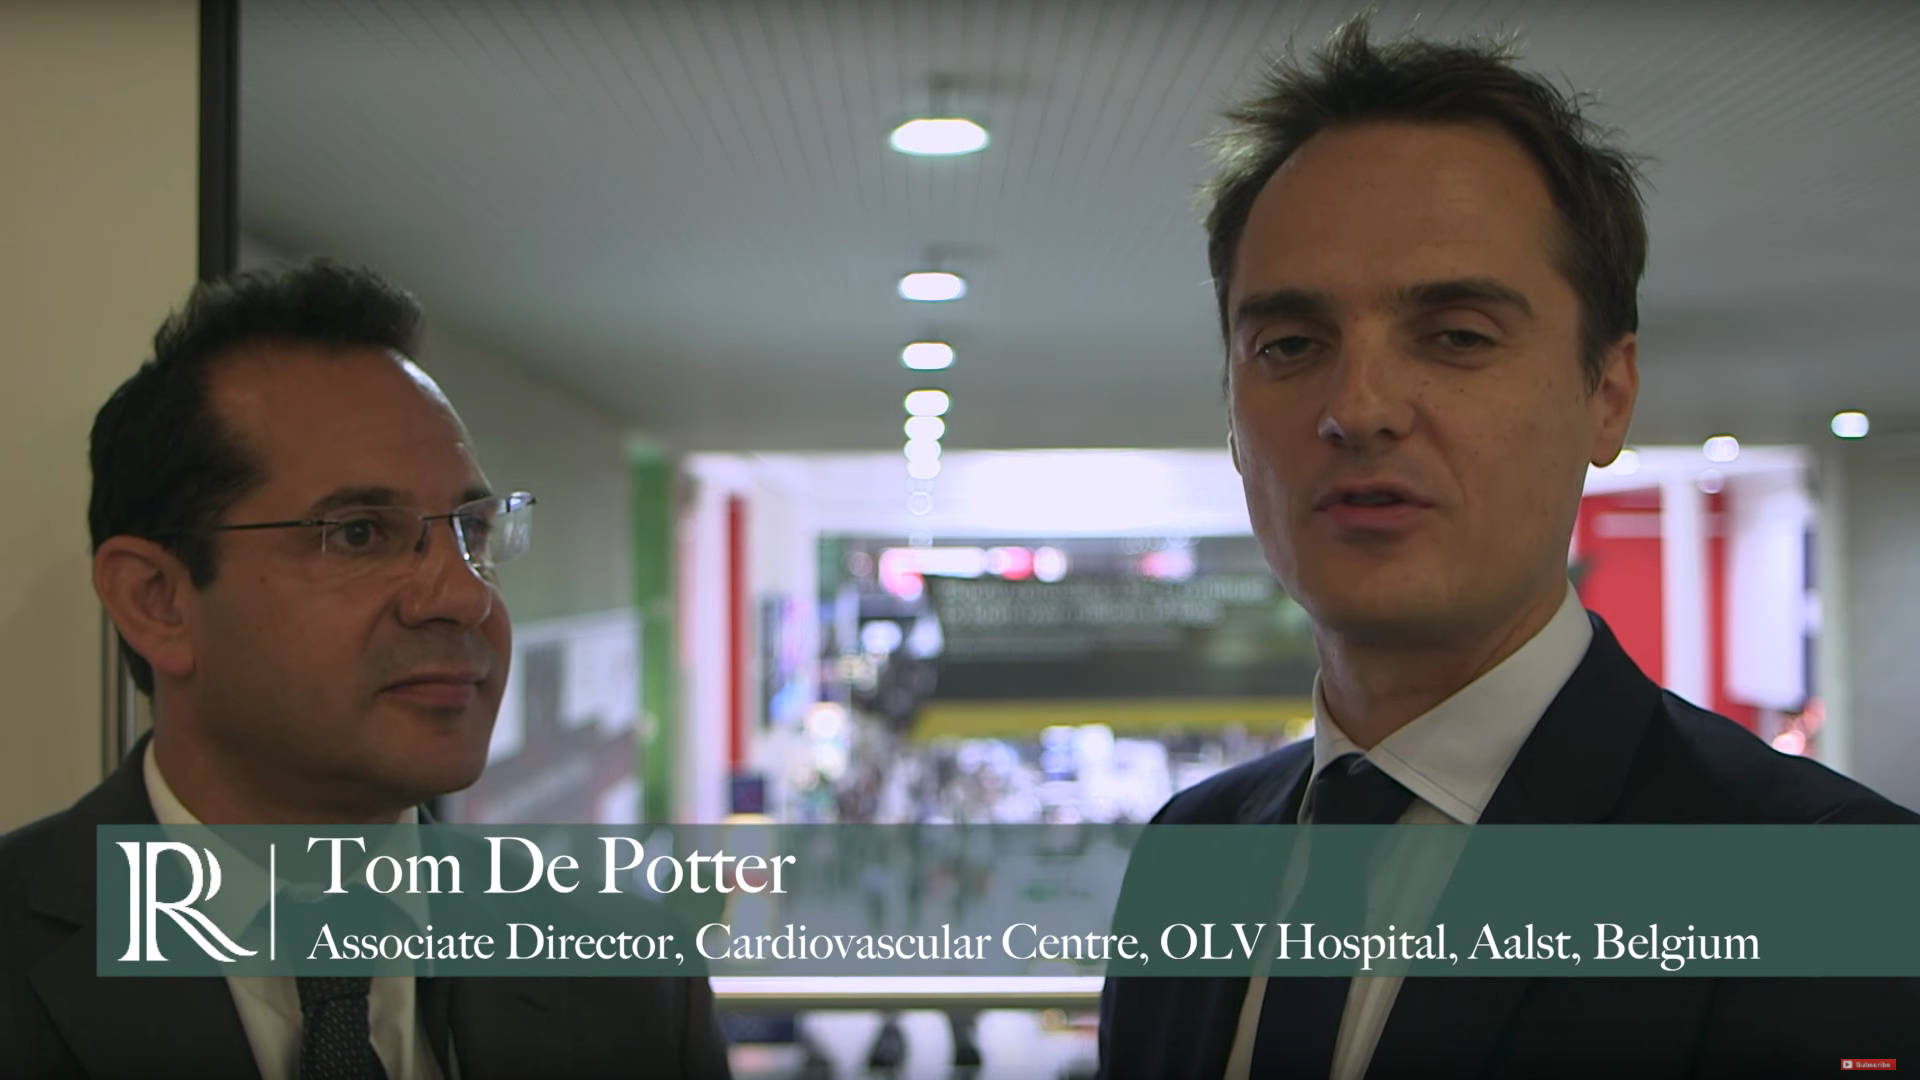 New Generation S-ICDs in ESC 2015 - om De Potter and Pier Lambiase